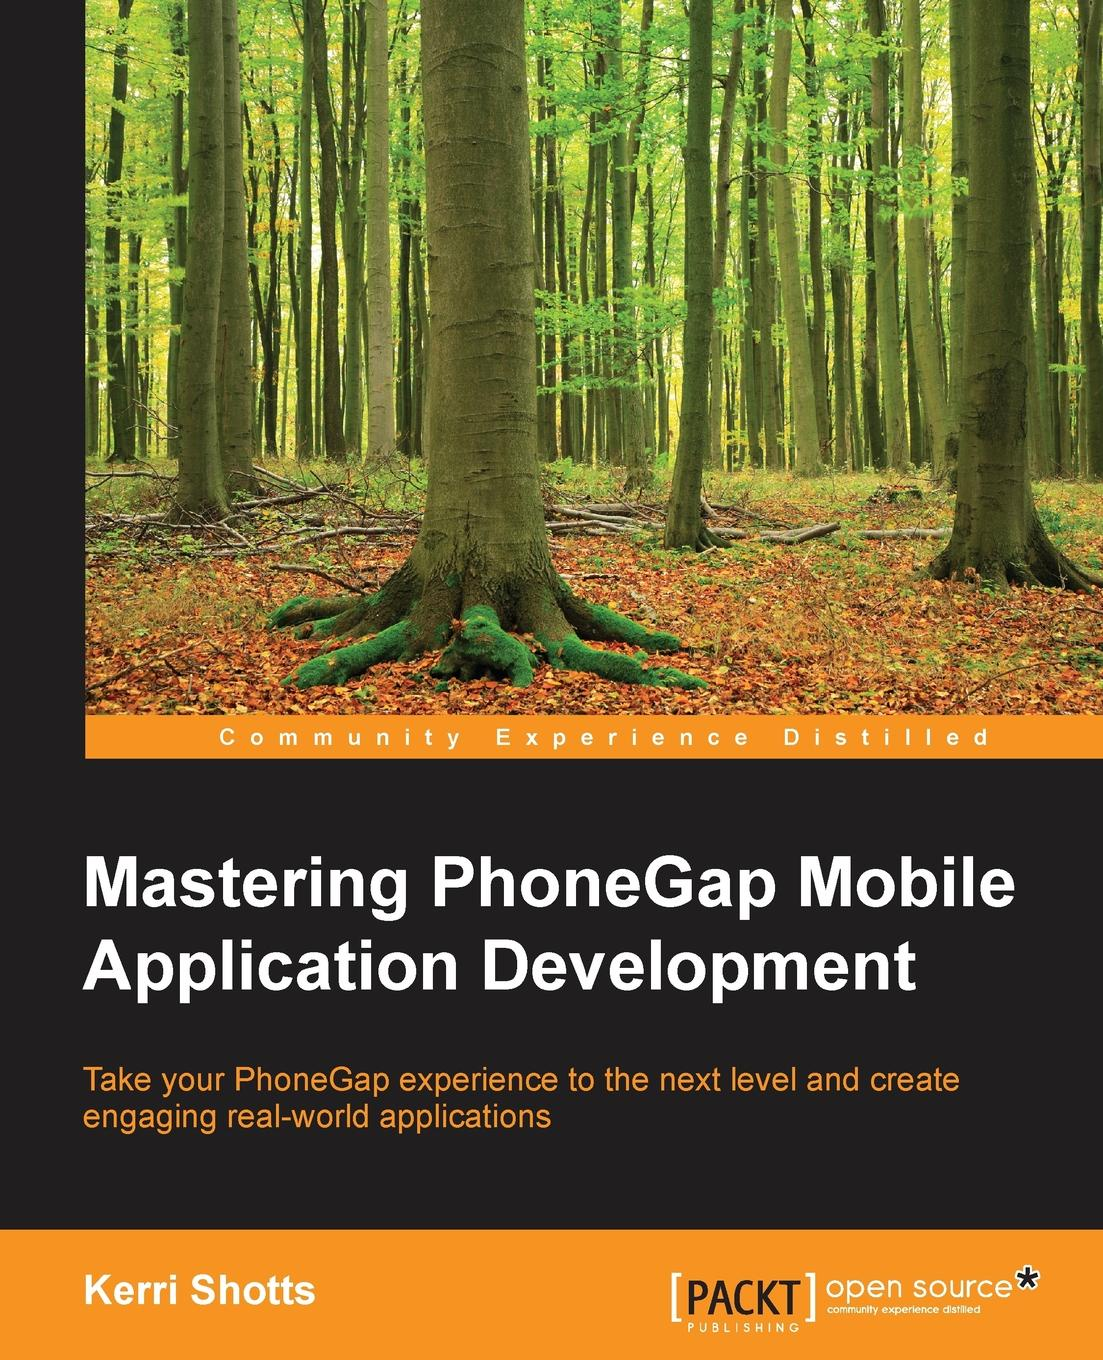 Kerri Shotts Mastering PhoneGap Mobile Application Development philip klauzinski john moore mastering javascript single page application development